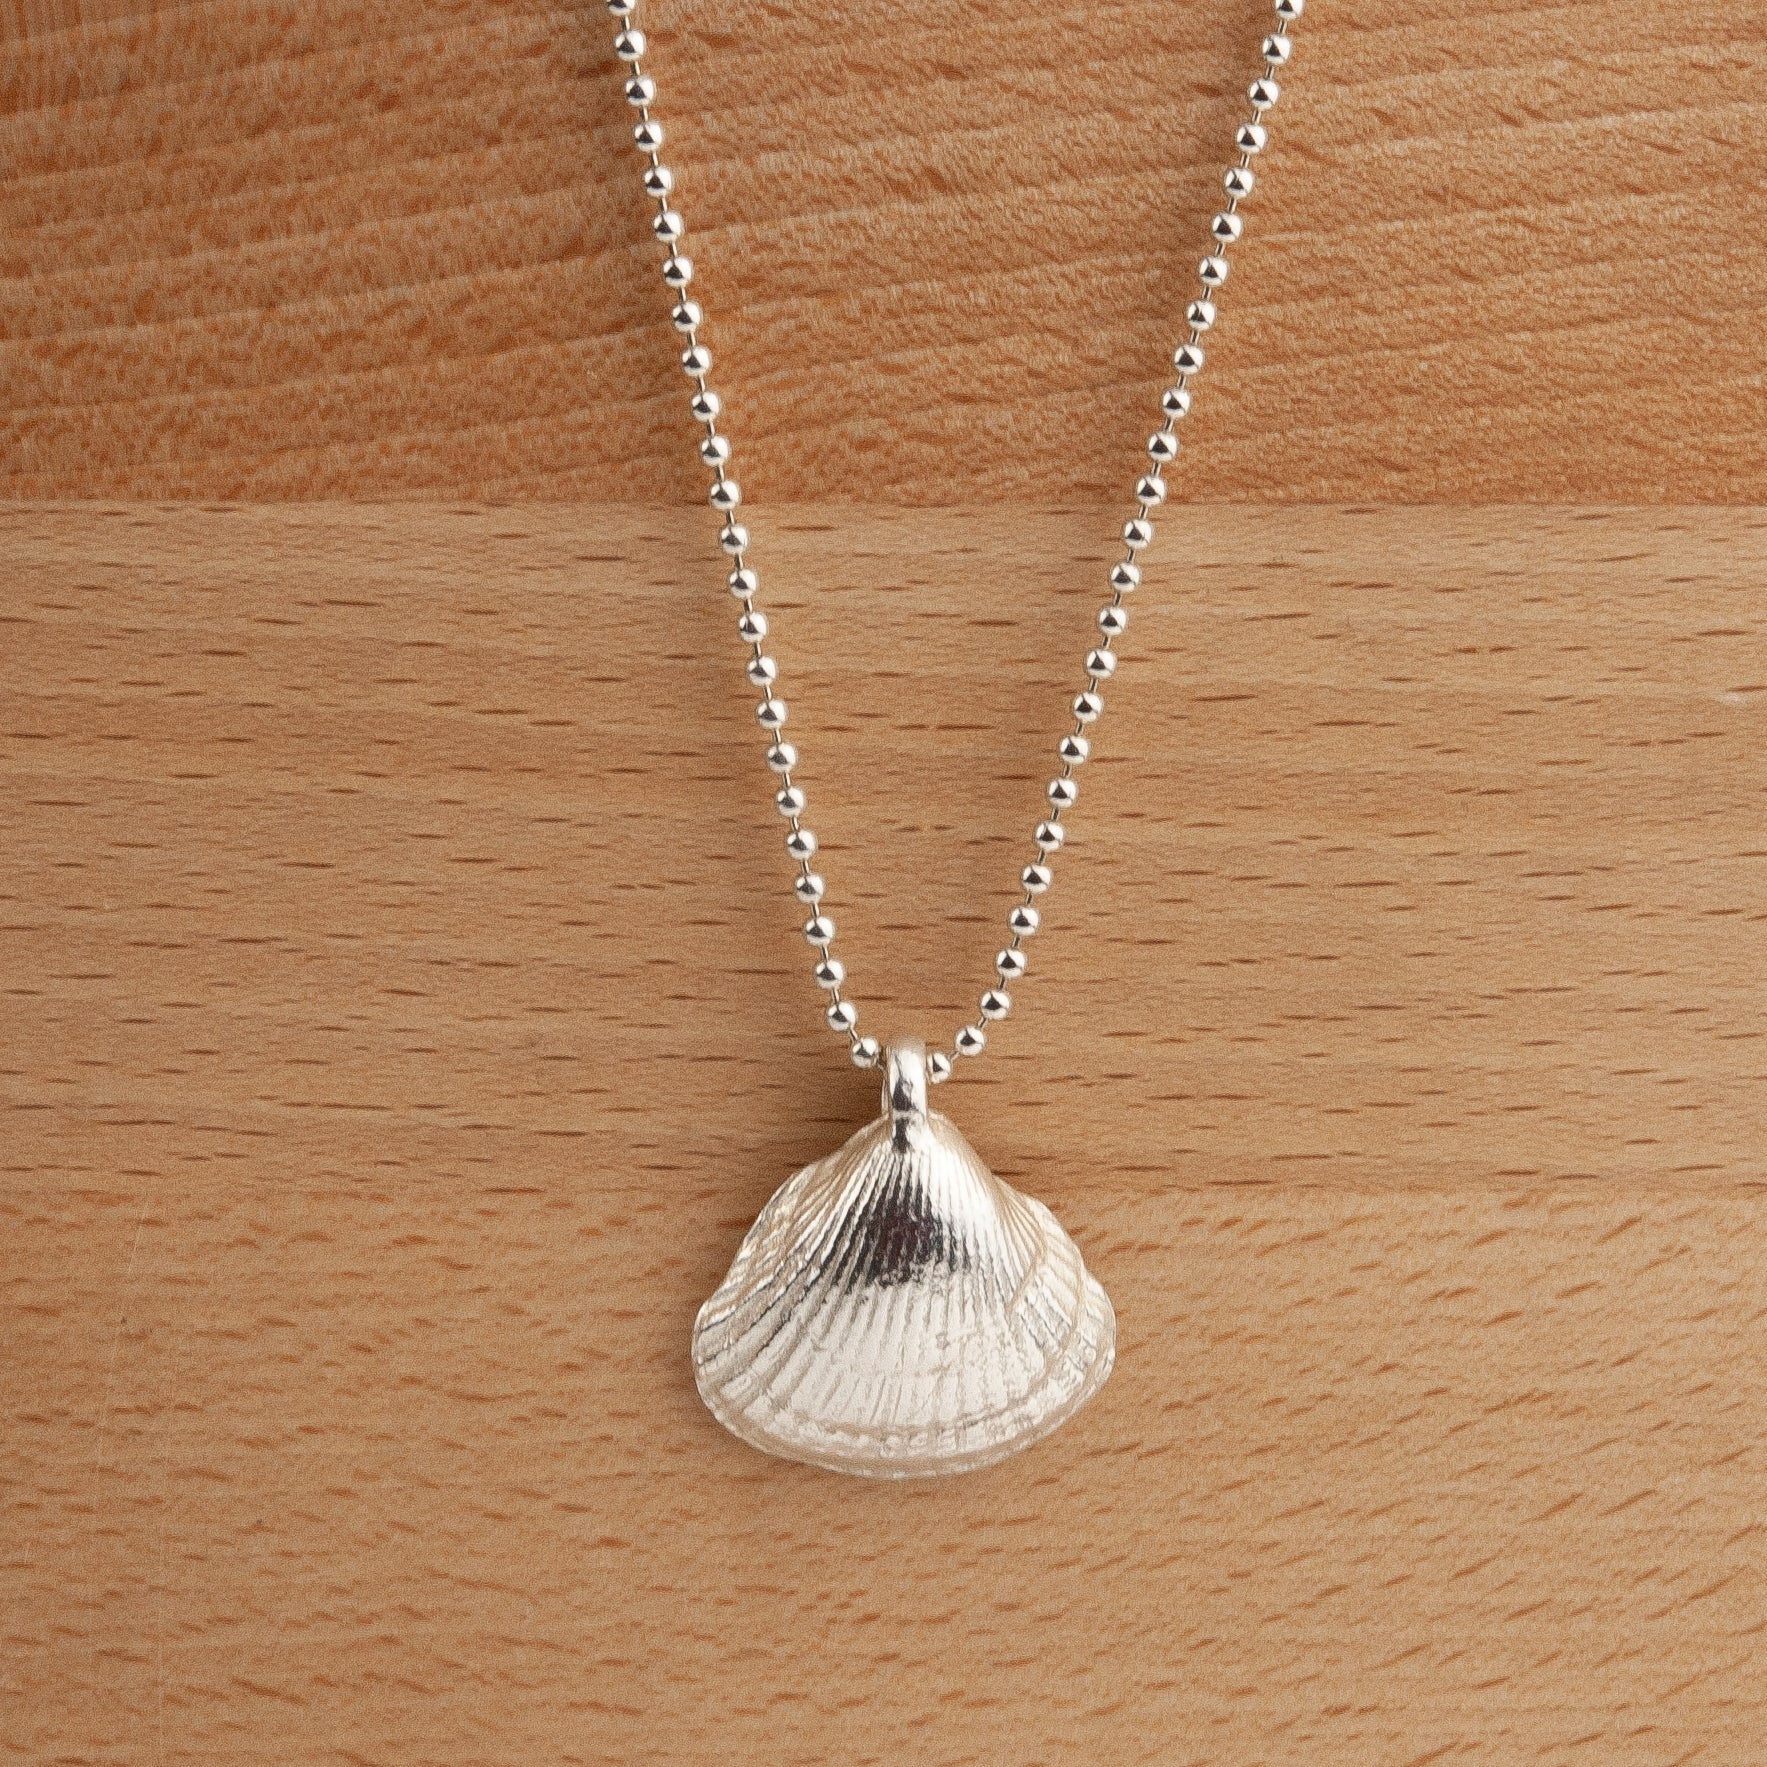 Belle & Bee Sterling Silver Ball Chain Necklace with Maxi Shell Charm